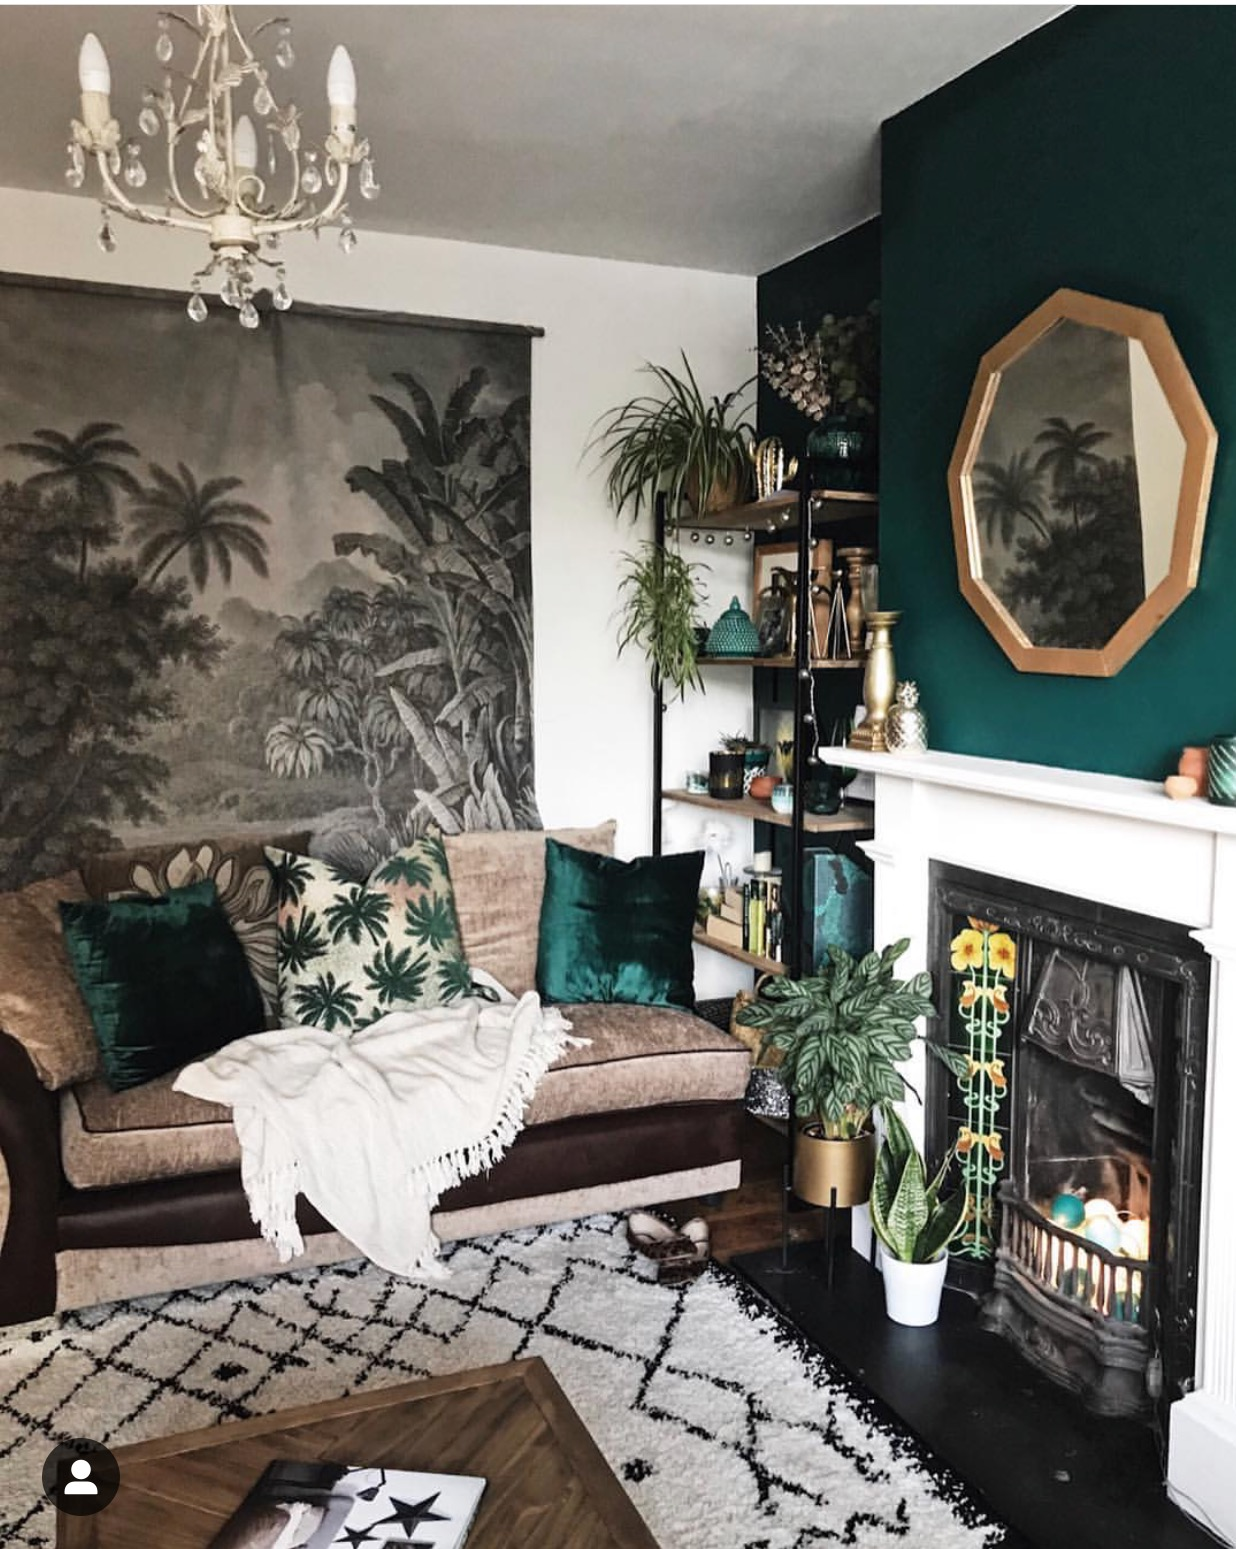 My favourite part of this room is my £3 charity find mirror. I love the gold against the green backdrop